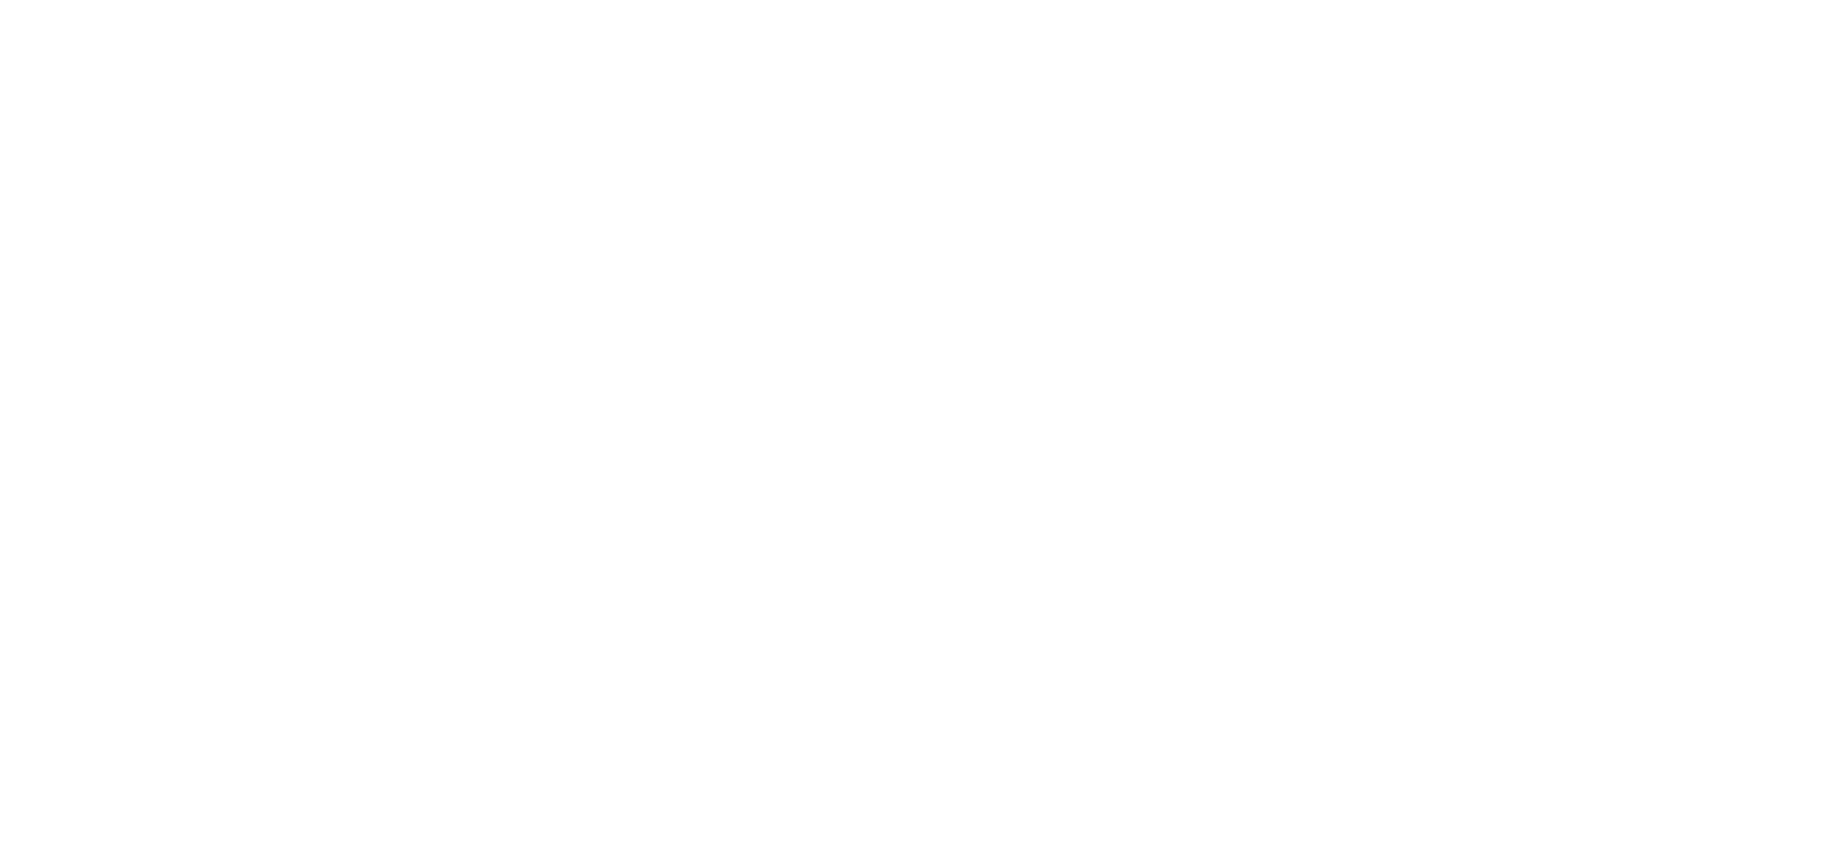 MMGY Global Travel Marketing Collective